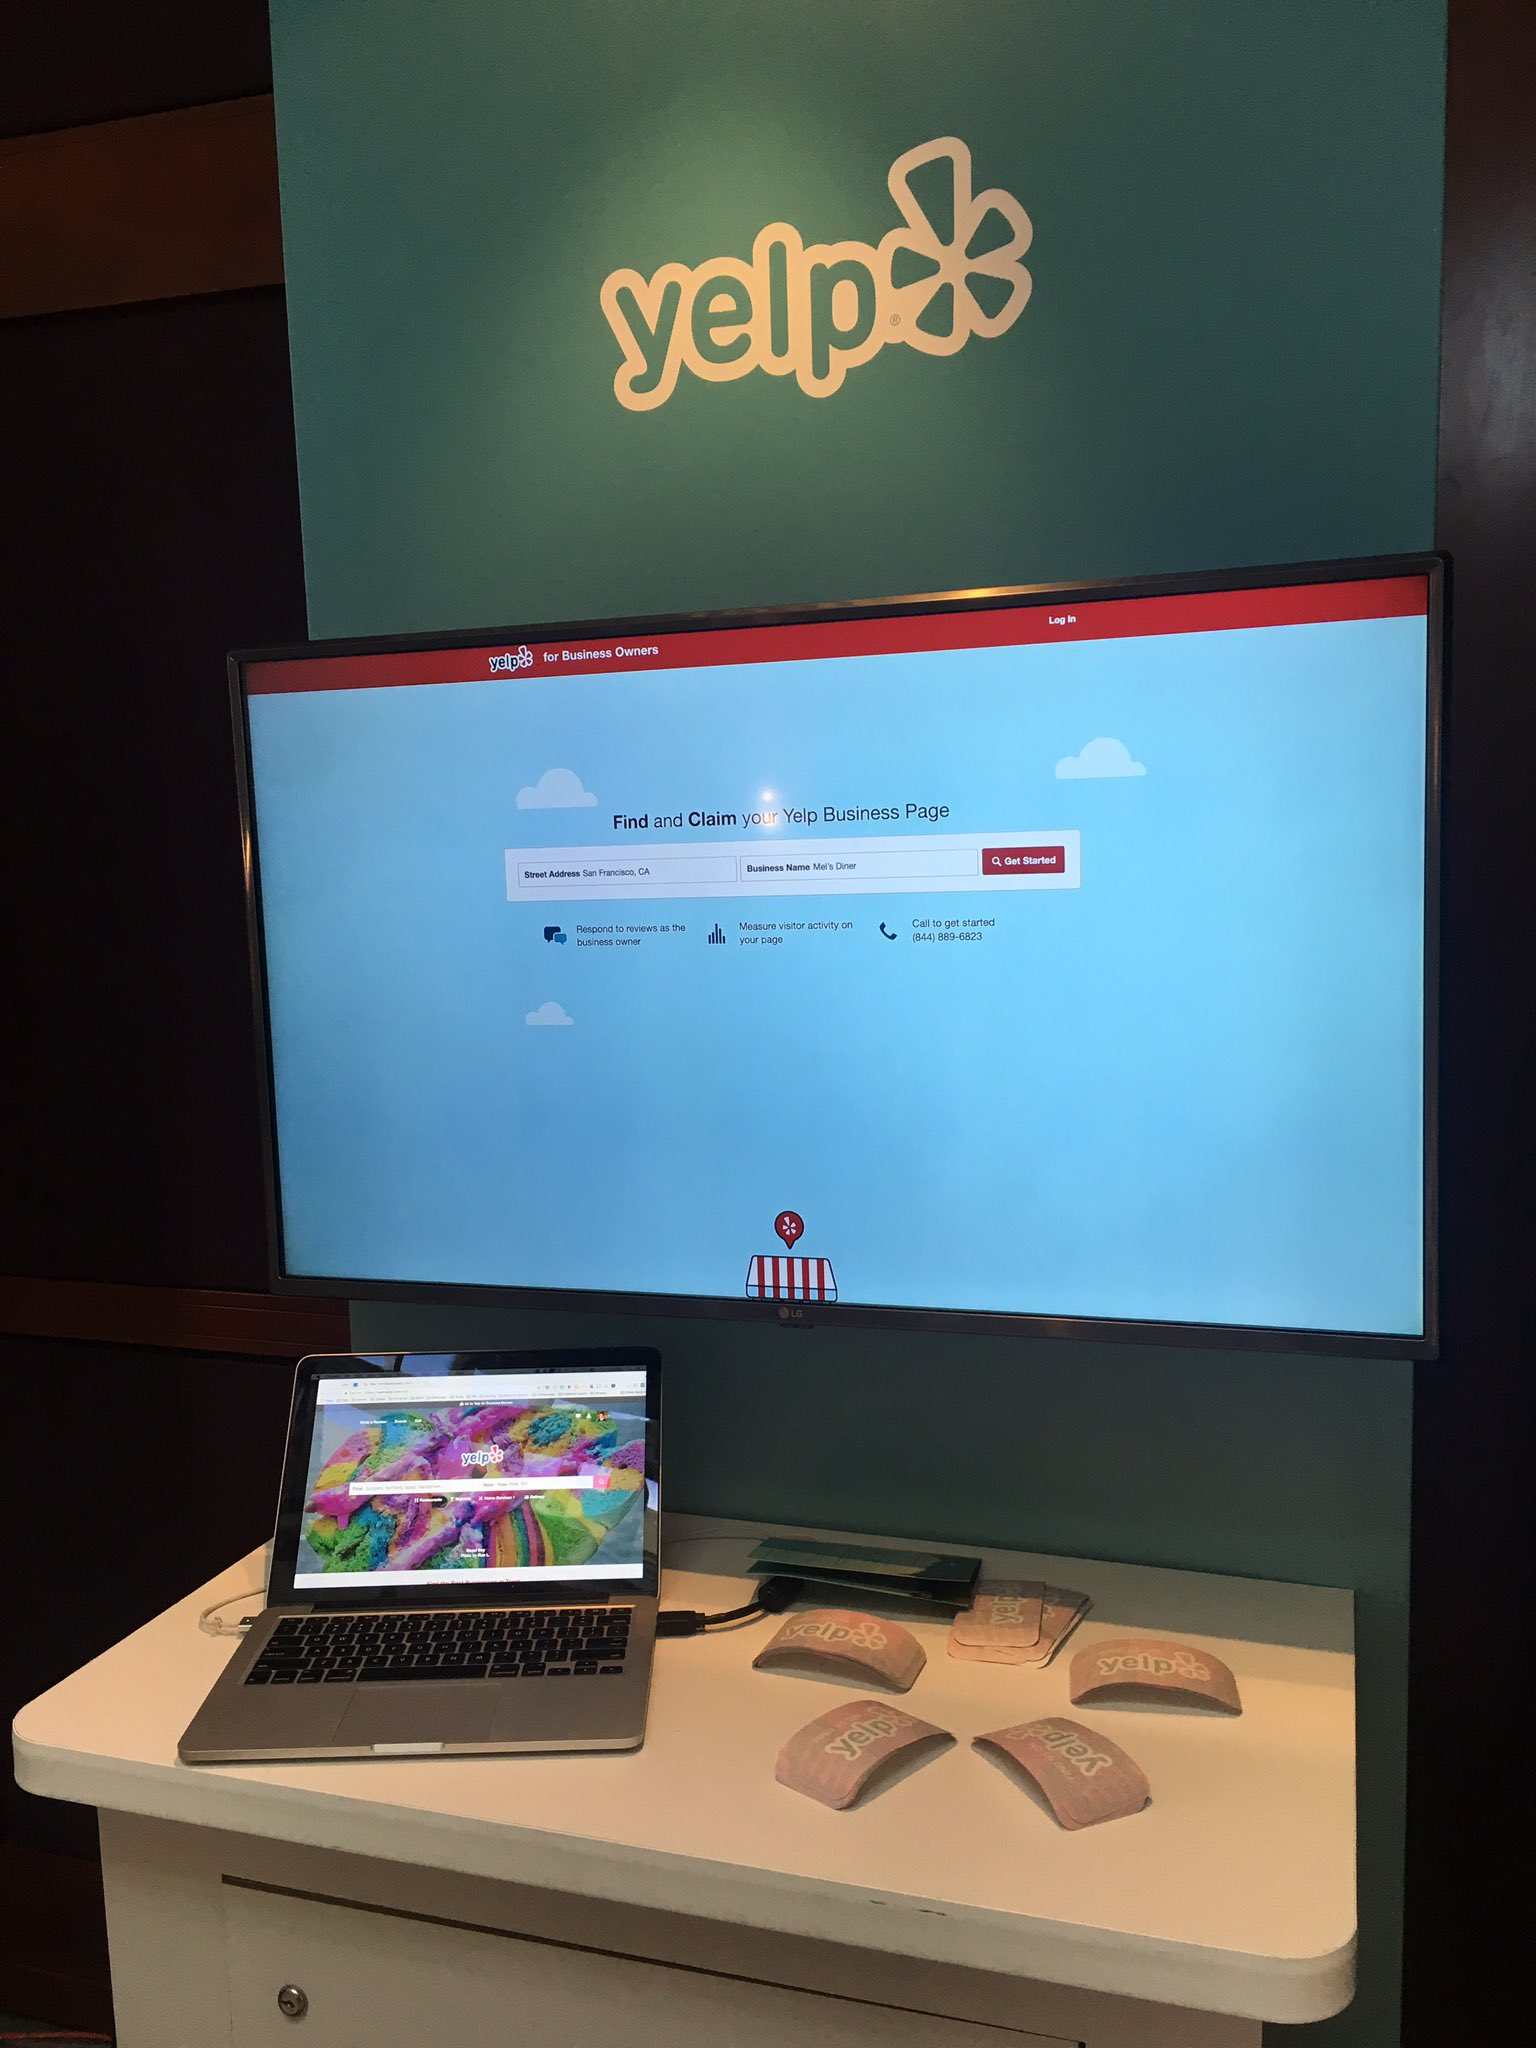 Yelp For Business on Twitter: